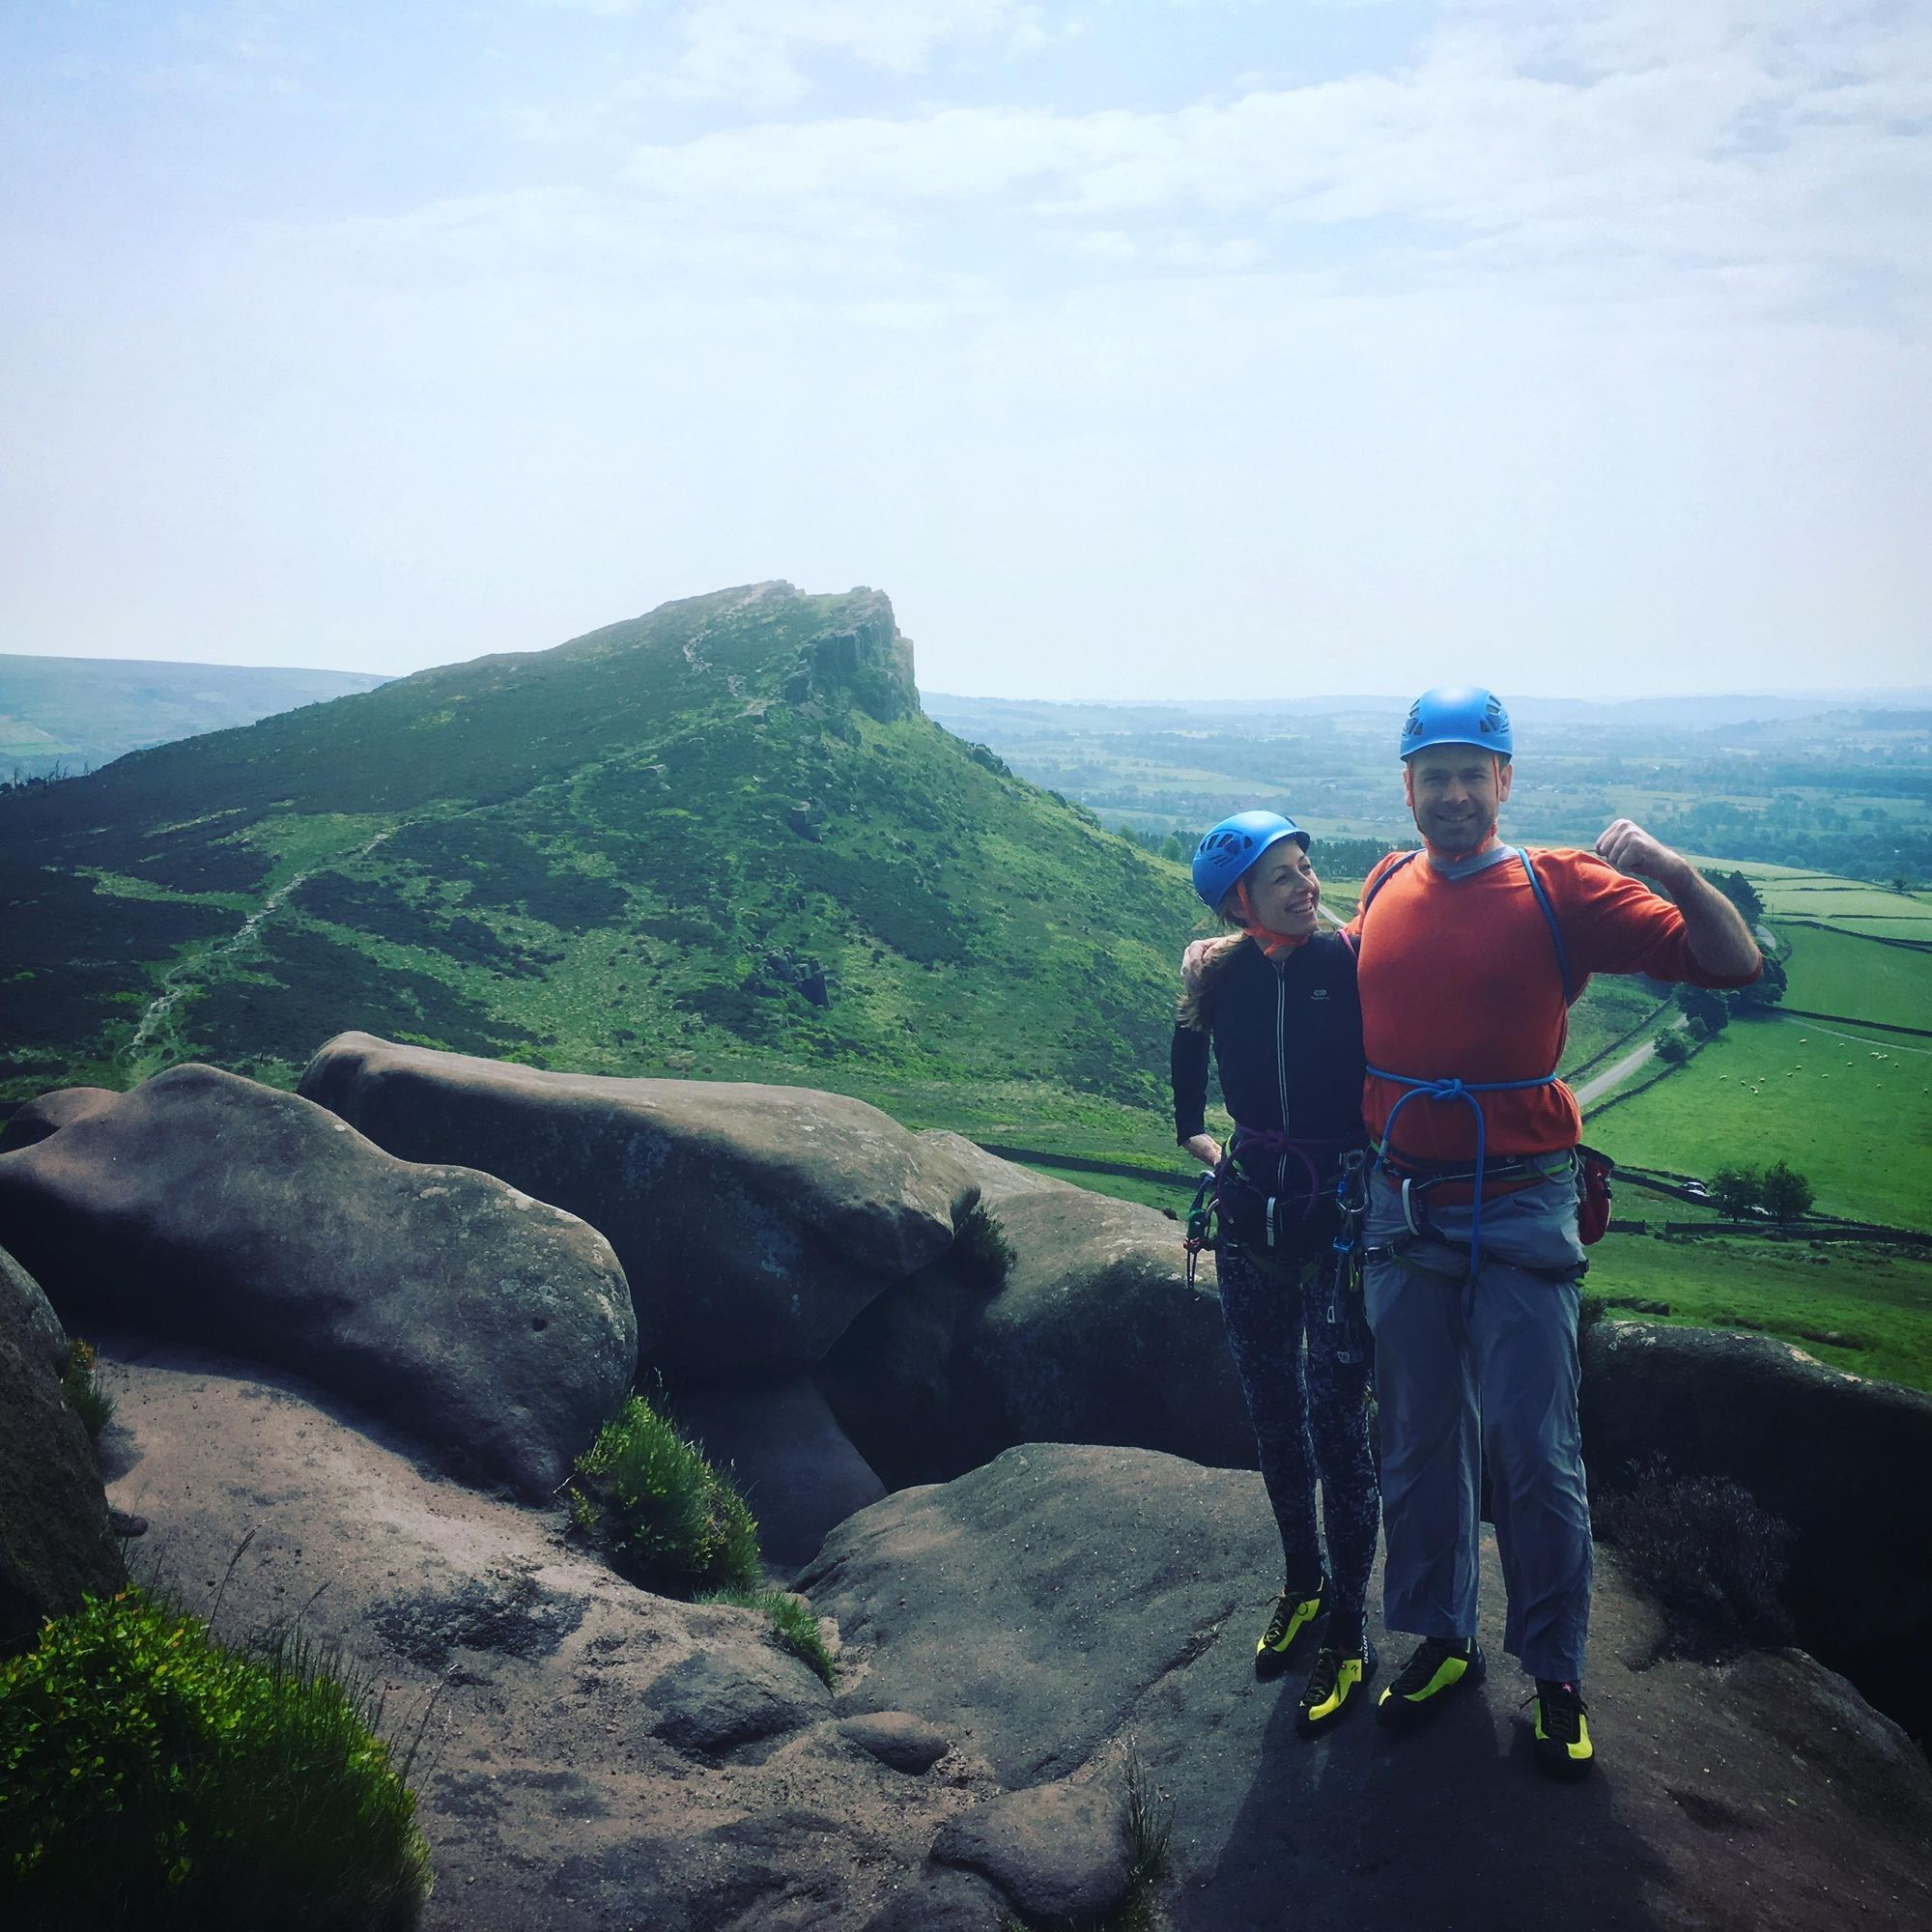 Peak-District-Climbing---DIY-Guide---Instructors-3